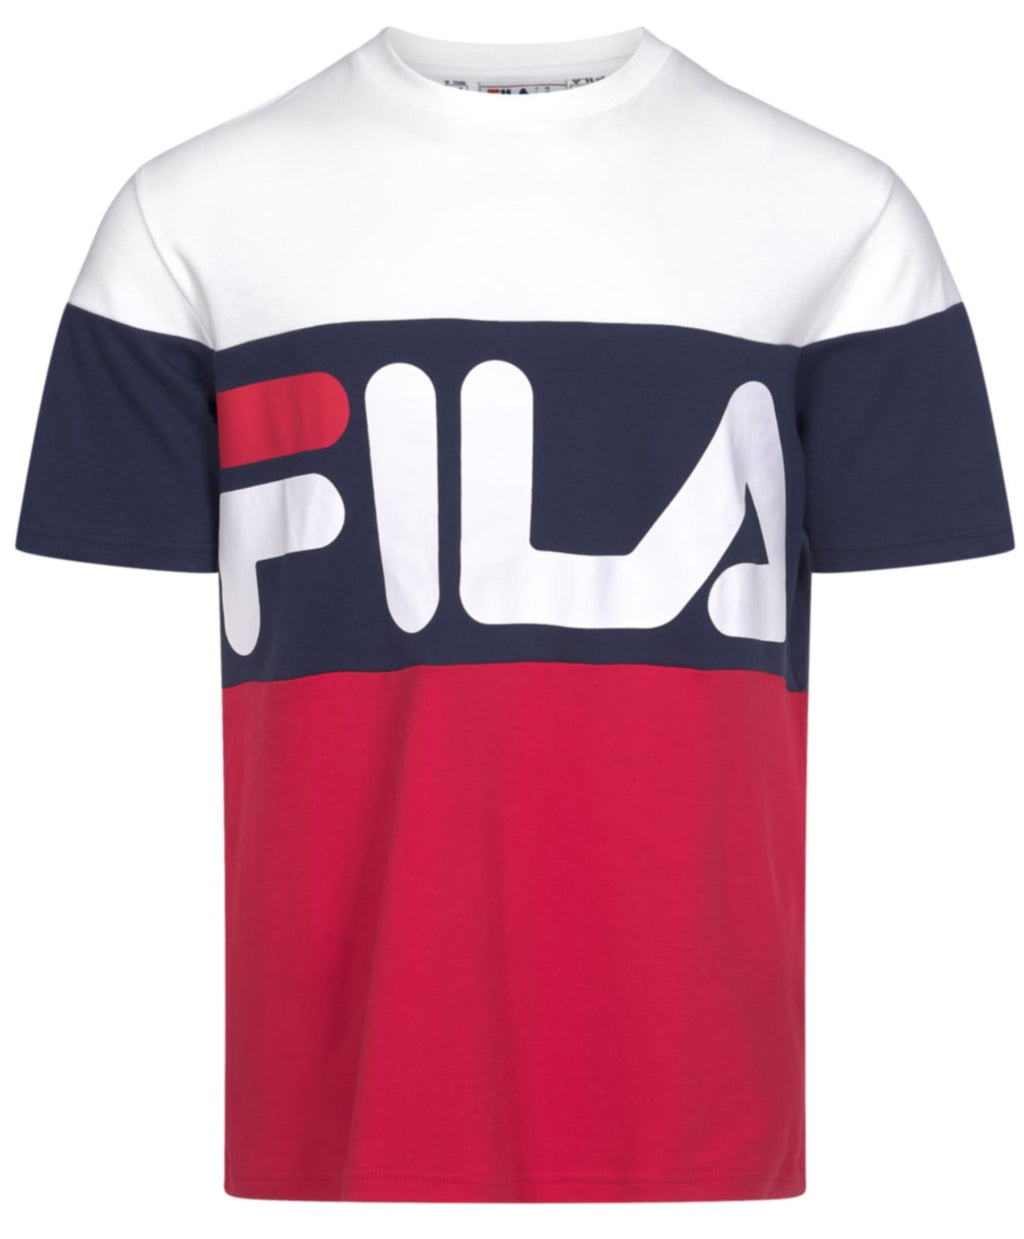 Fila Vialli Colour Block T-Shirt White